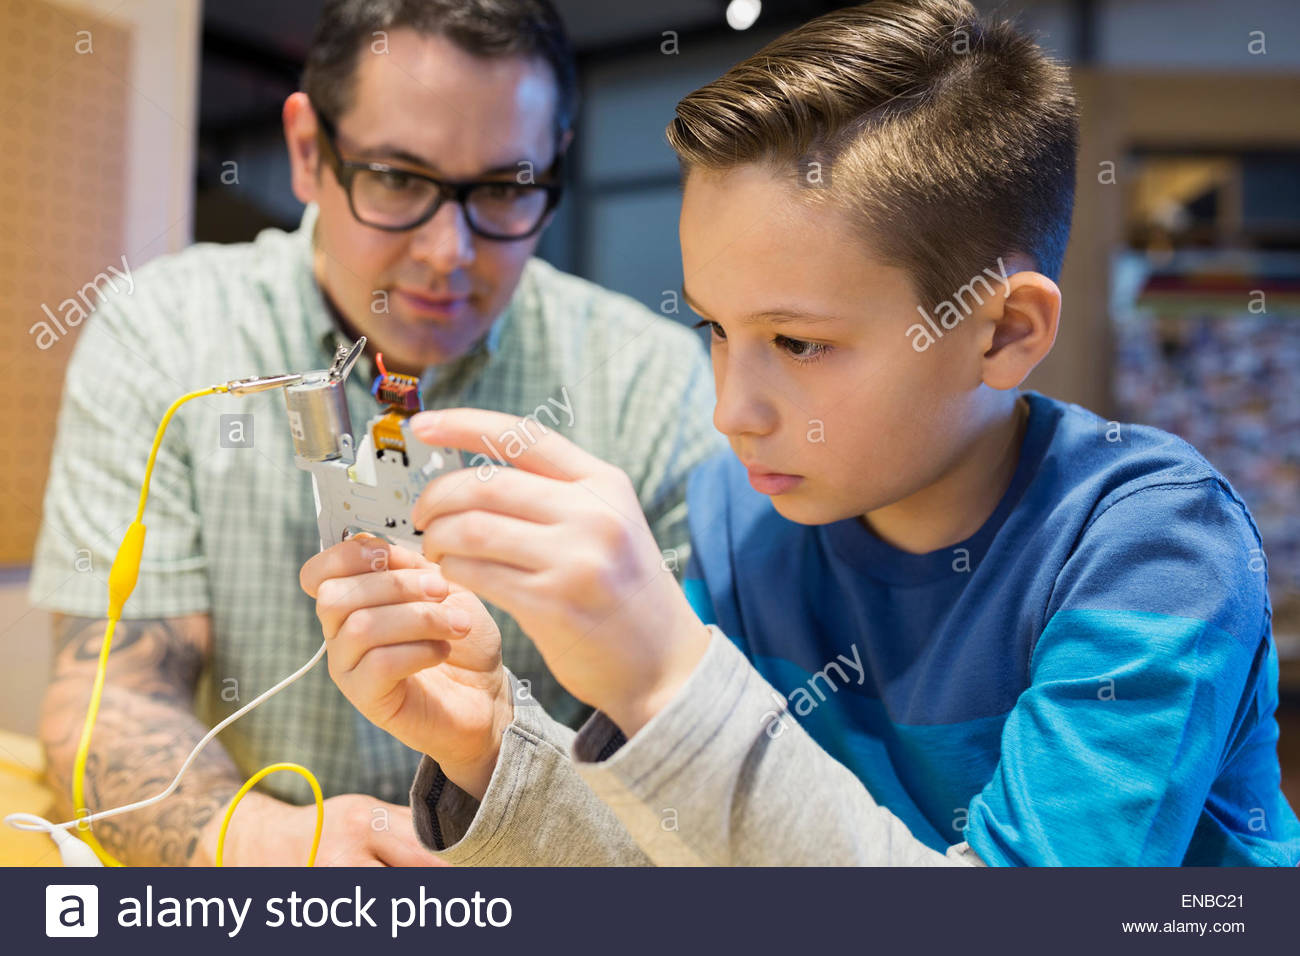 Teacher and student assembling electronic circuit science center - Stock Image